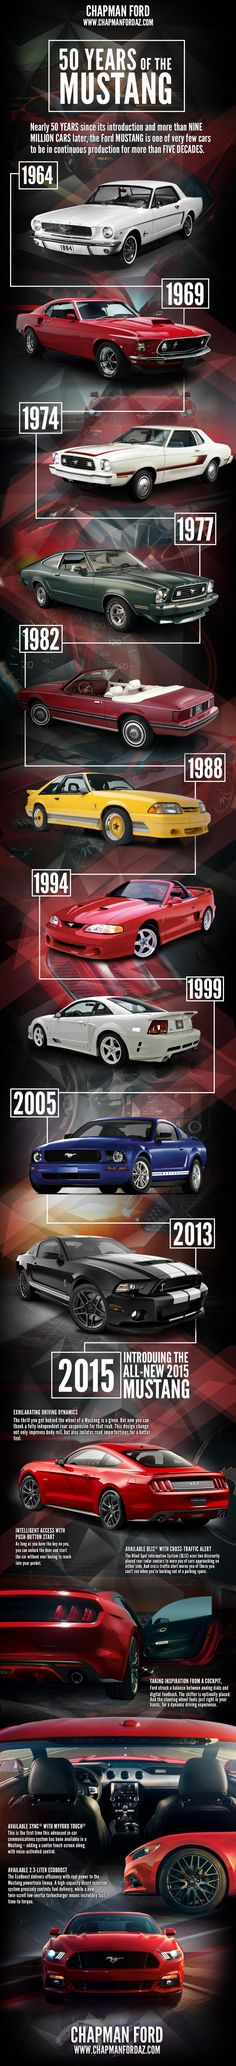 Look Back At the Iconic Ford Mustang...